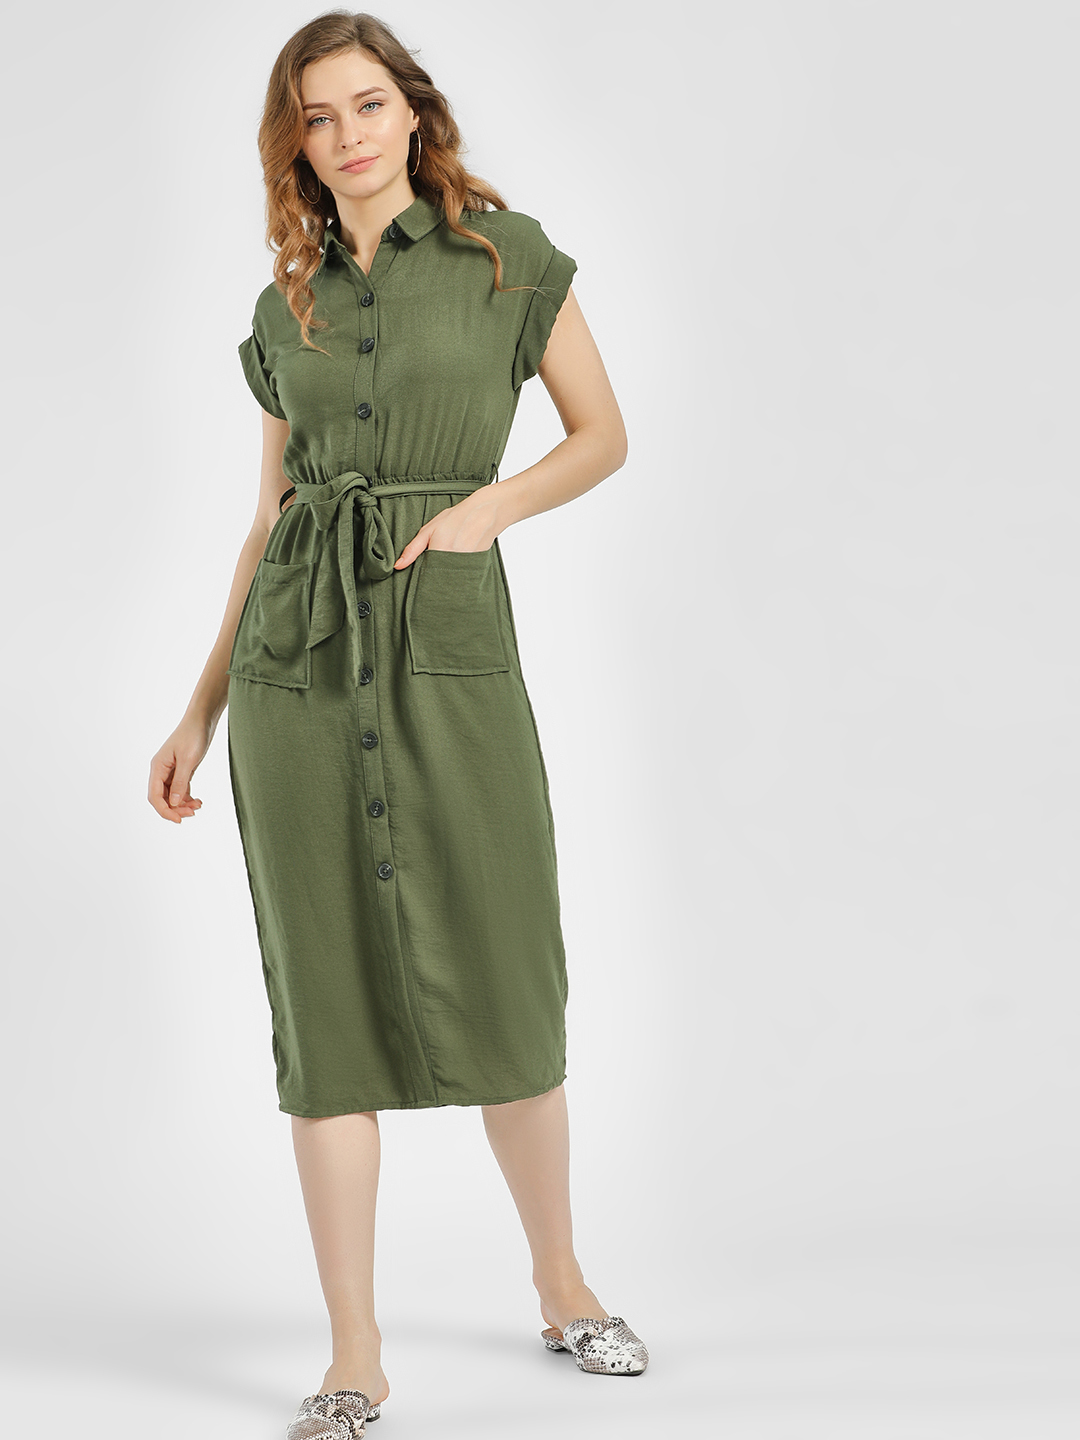 New Look Olive Belted Midi Shirt Dress 1